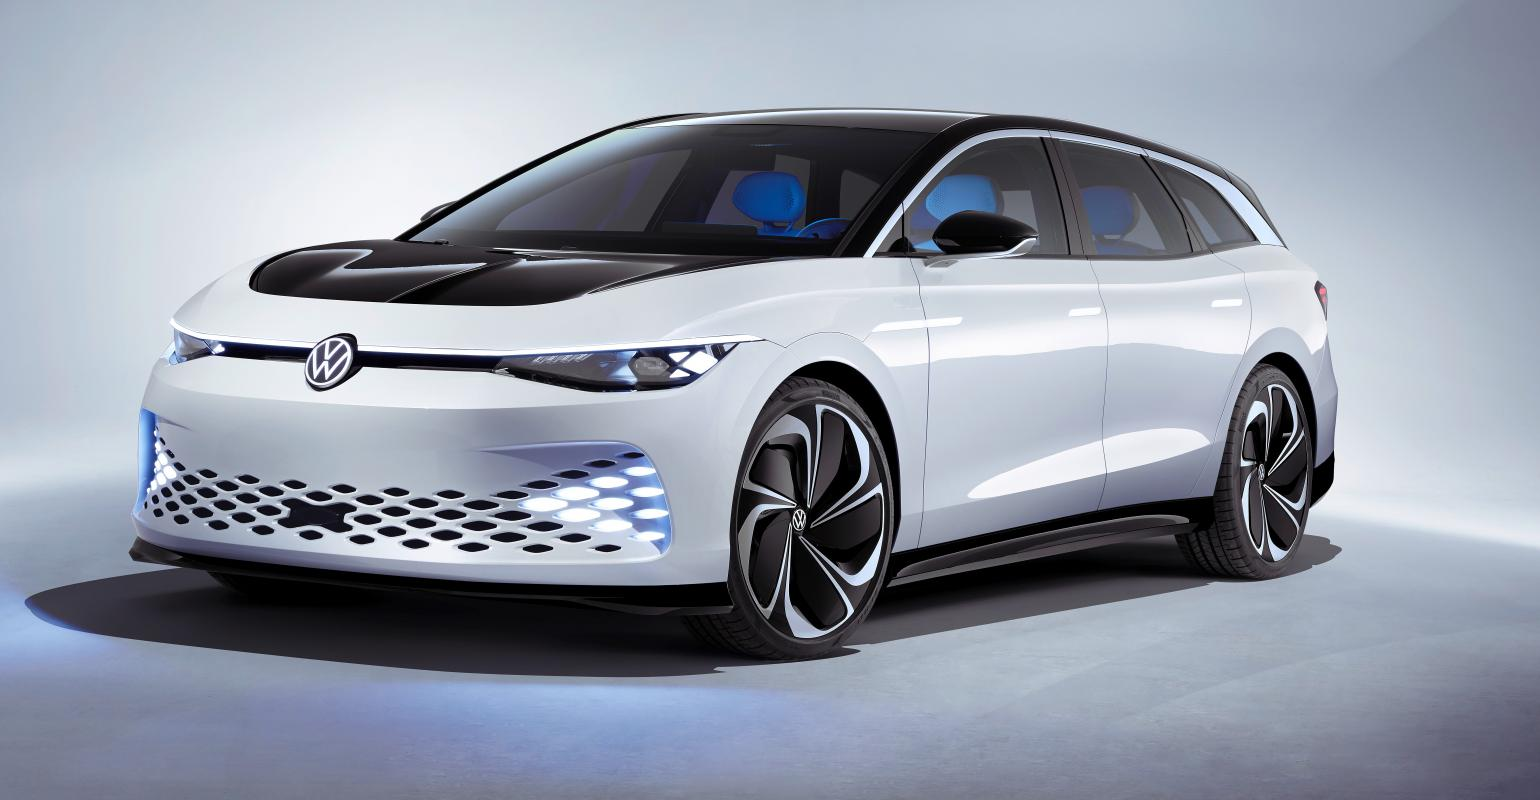 The company says the large electric wagon is a design study, but it might hit production eventually.